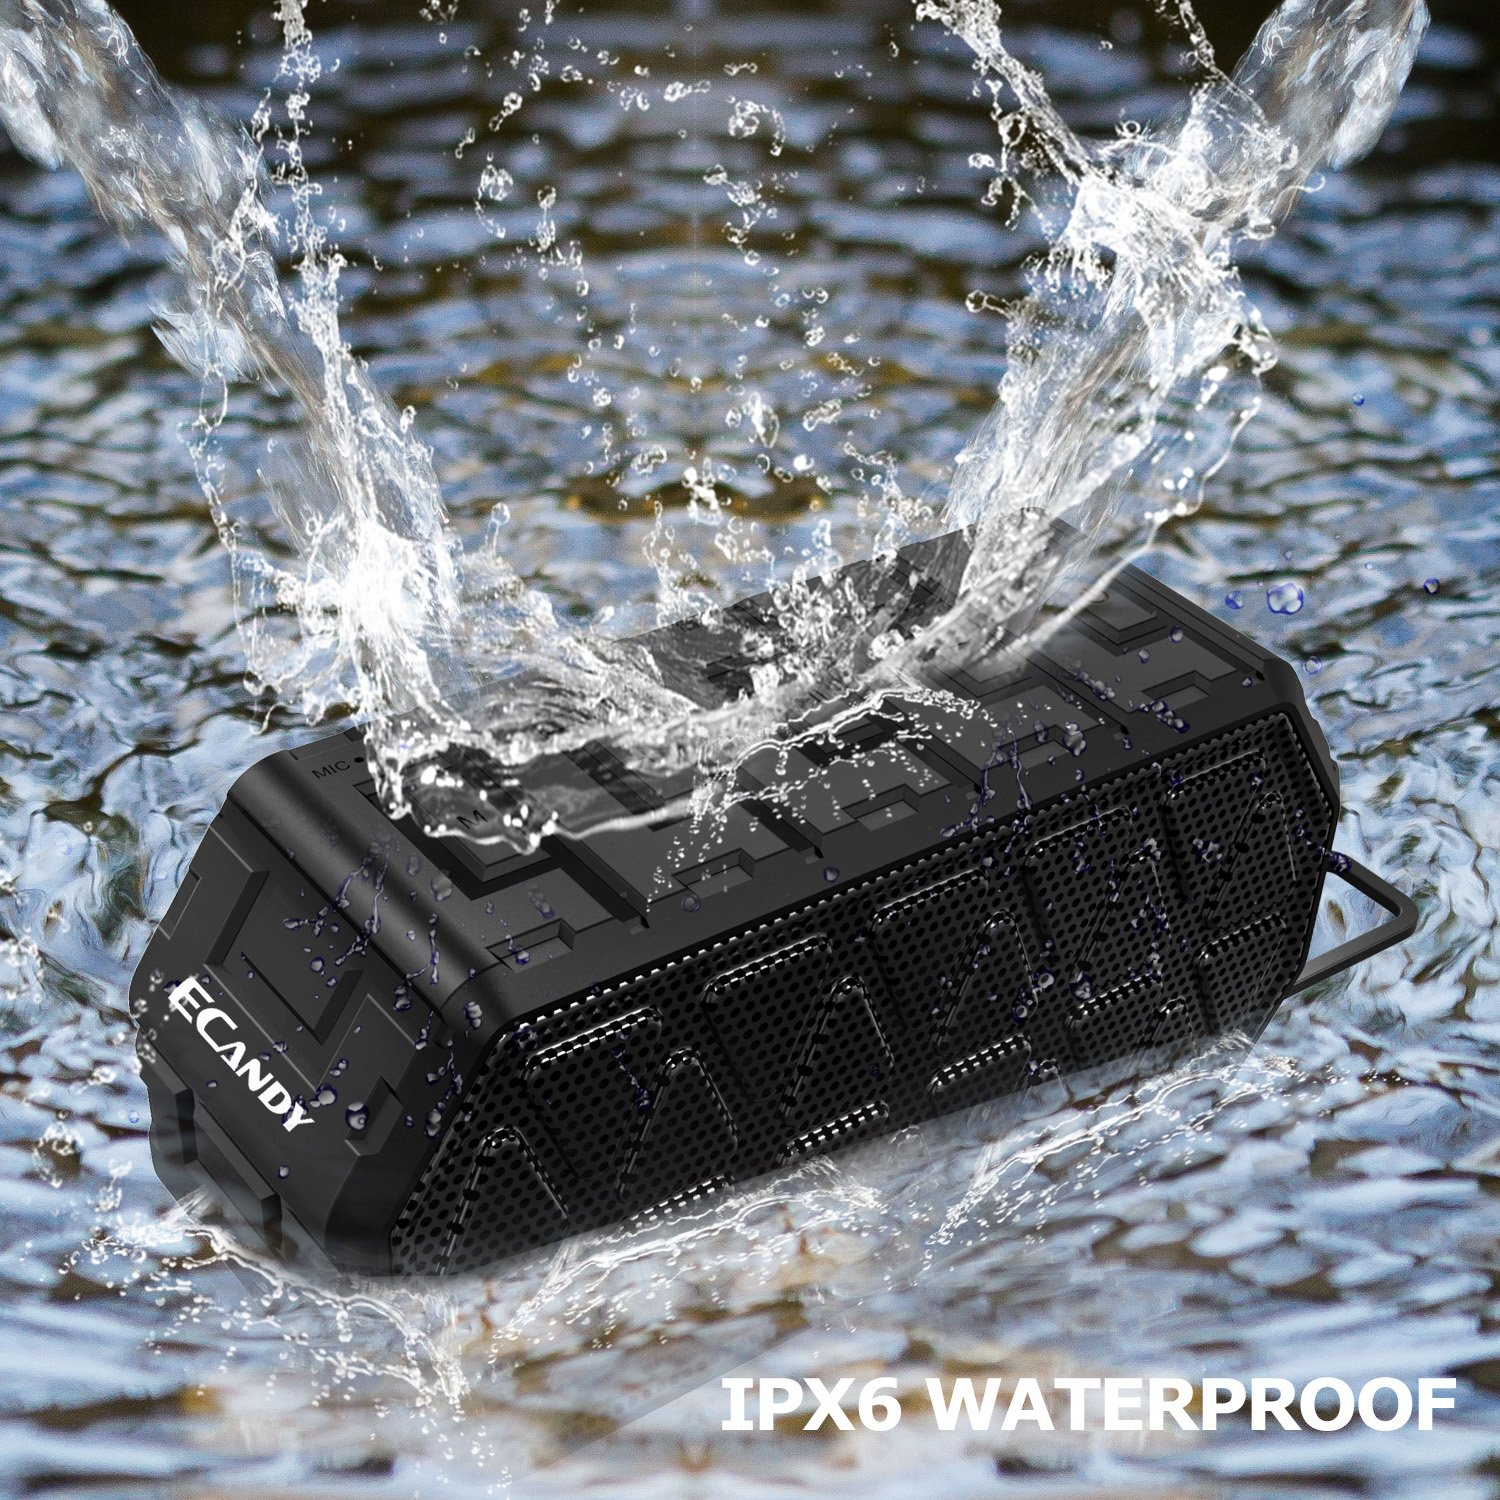 Ecandy Waterproof Outdoor Speaker, Bluetooth Speaker with Mic,12 Hours Playtime ,Pairs with All Your Bluetooth Devices - Phones, Tablets